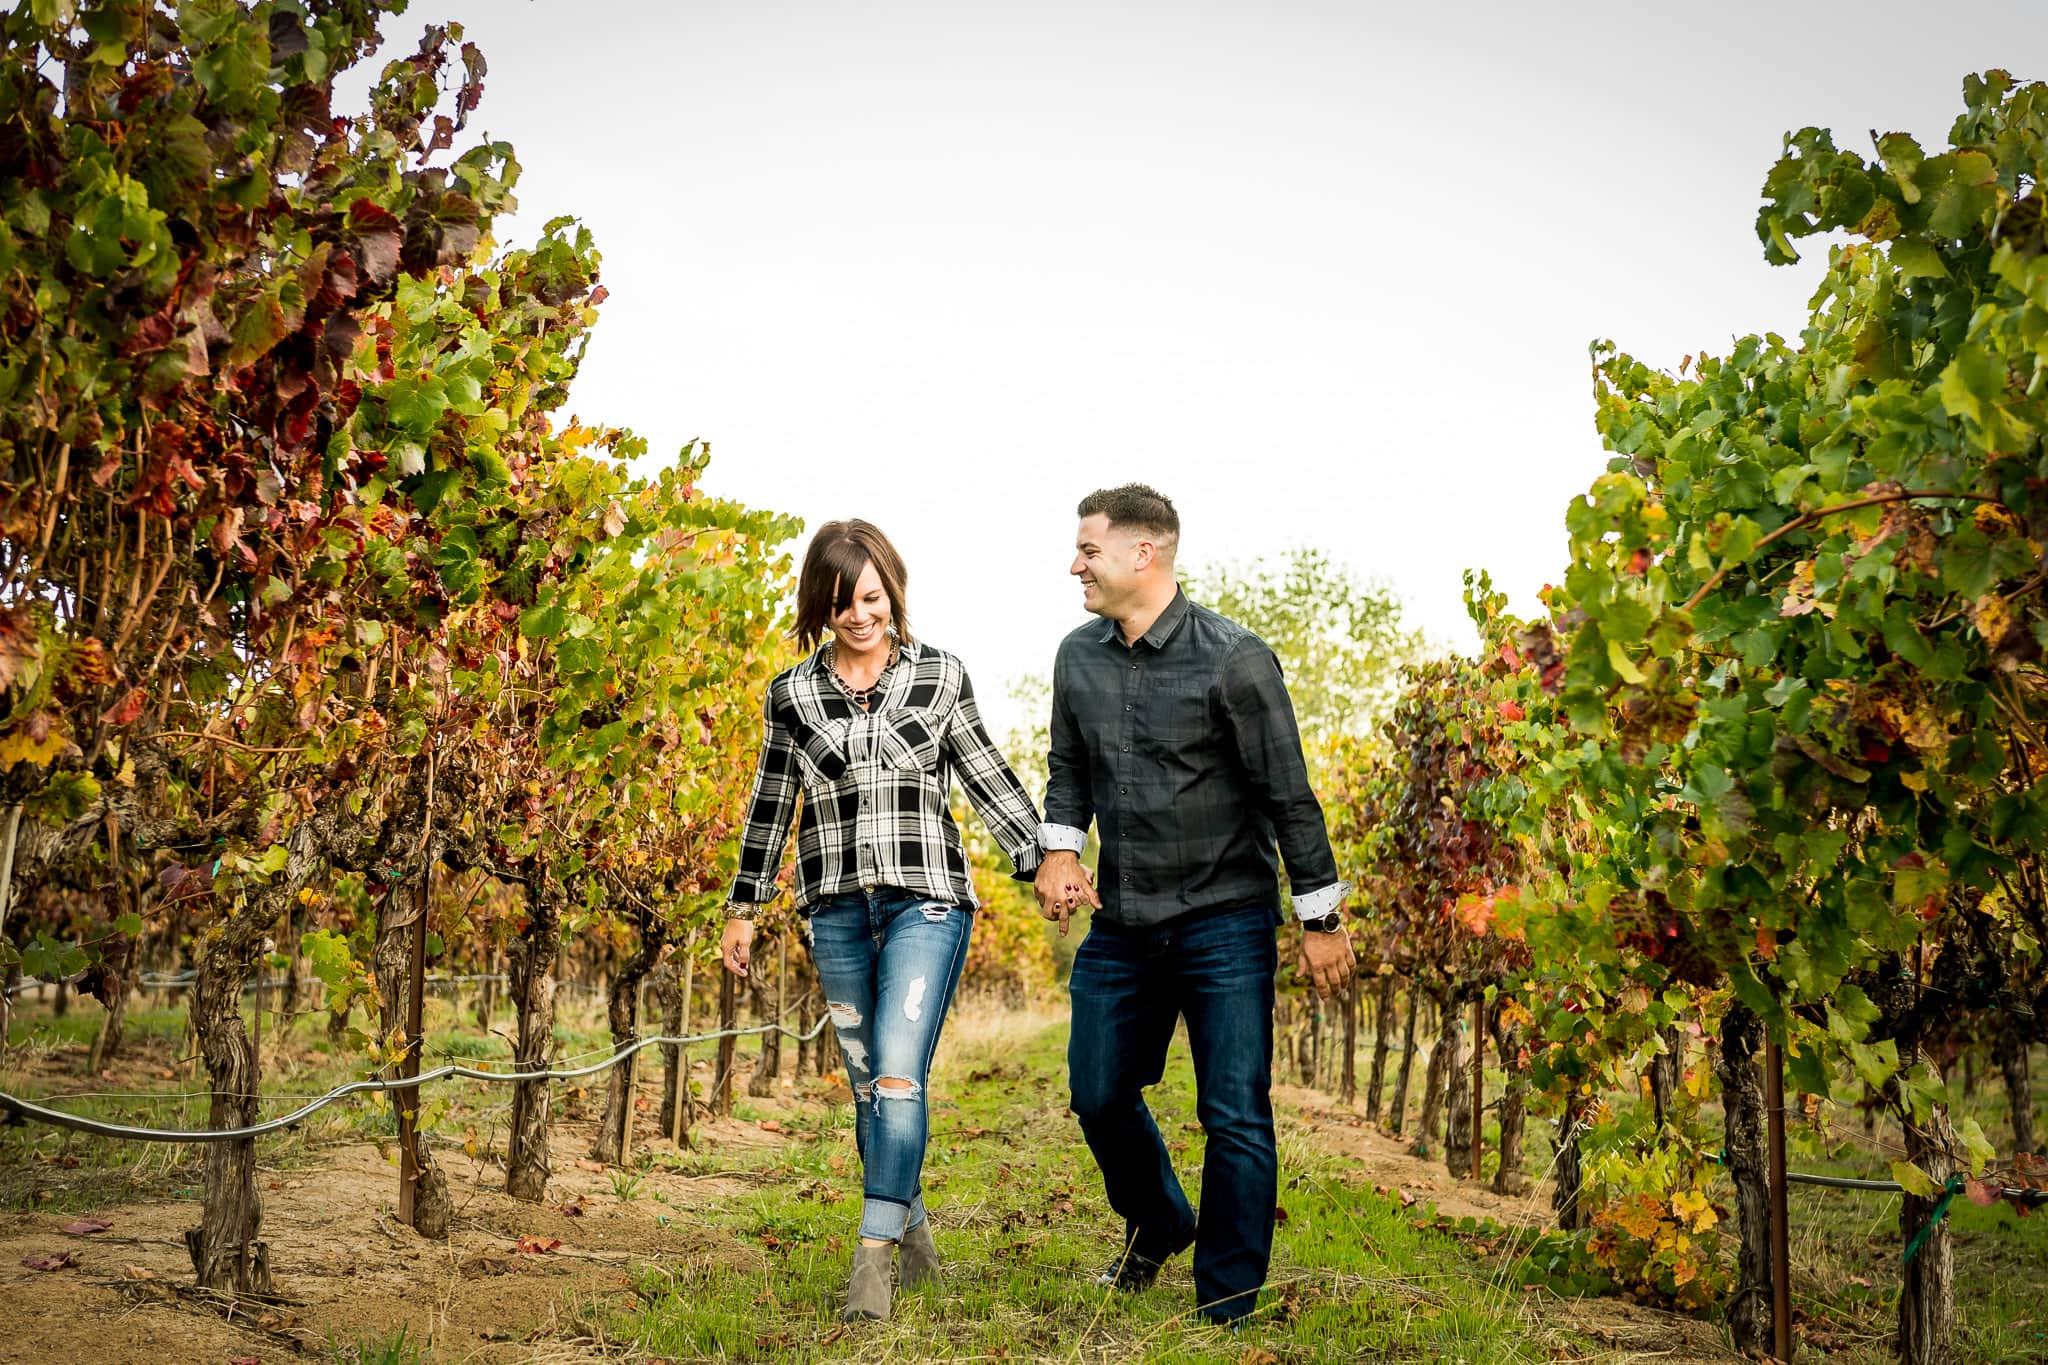 An engaged couple walking and laughing together in between colorful rows of grapes at Artesa Winery's Vineyard in Napa Valley